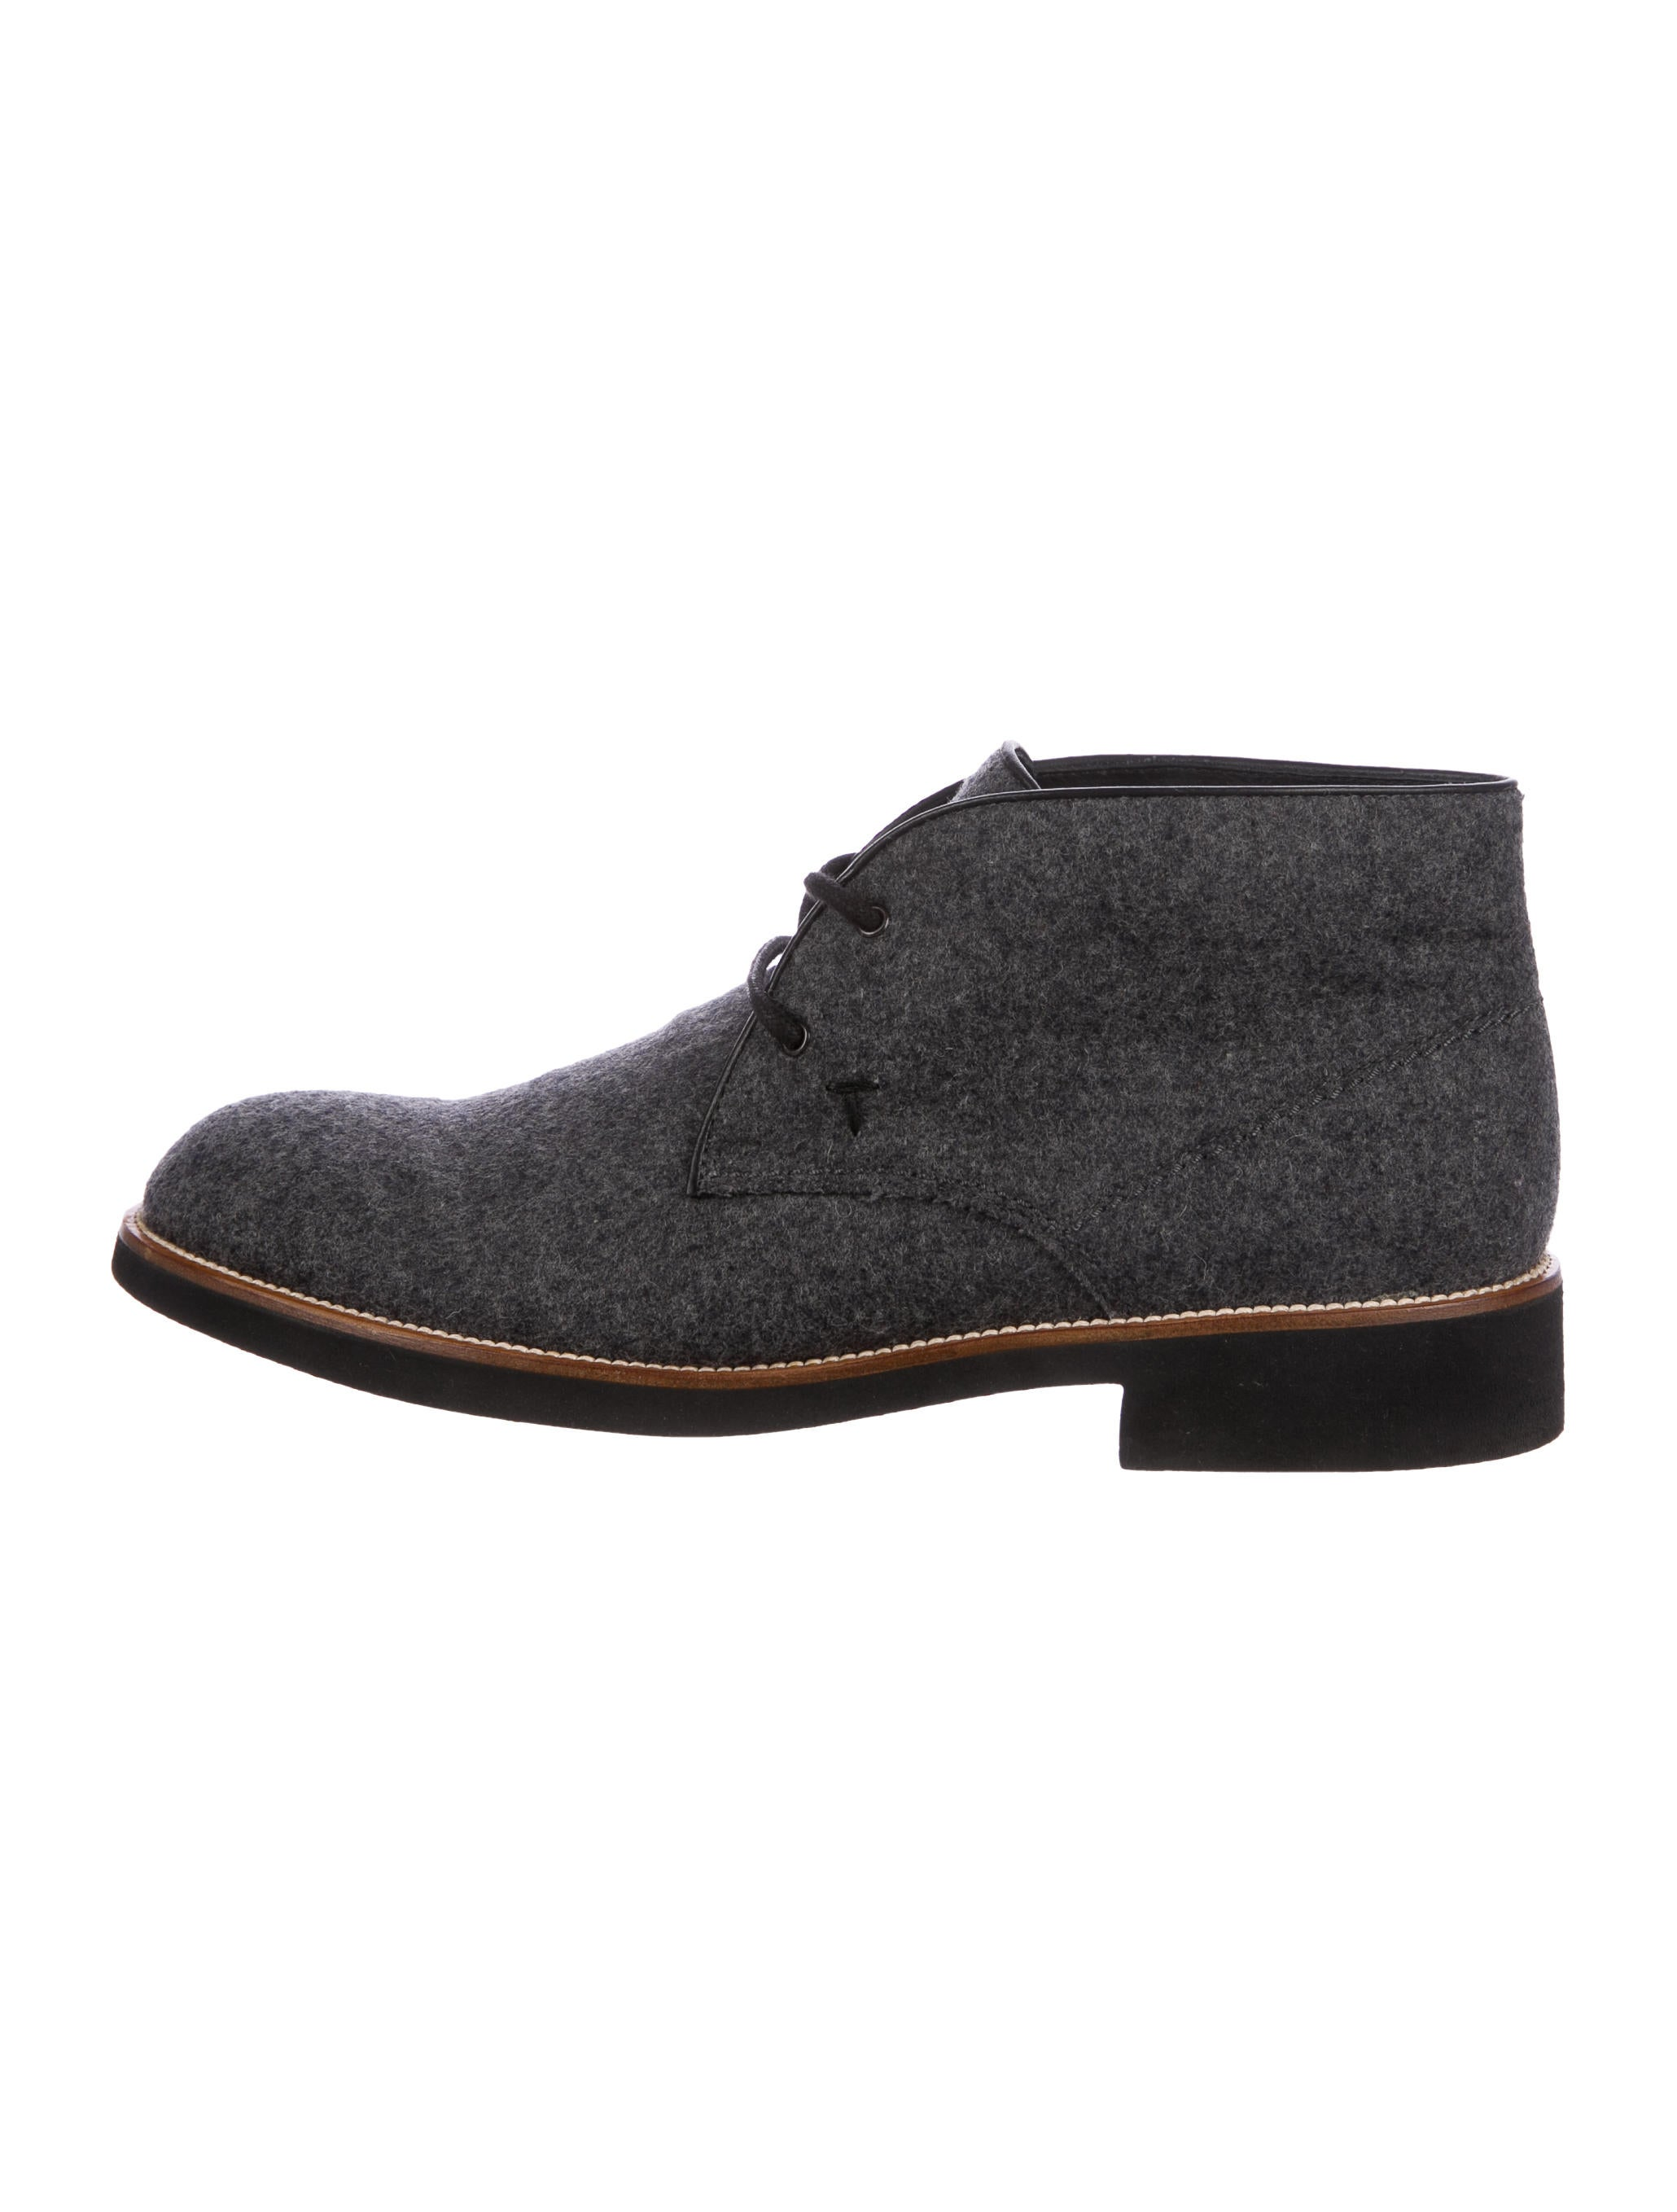 tod 39 s wool desert boots shoes tod44098 the realreal. Black Bedroom Furniture Sets. Home Design Ideas